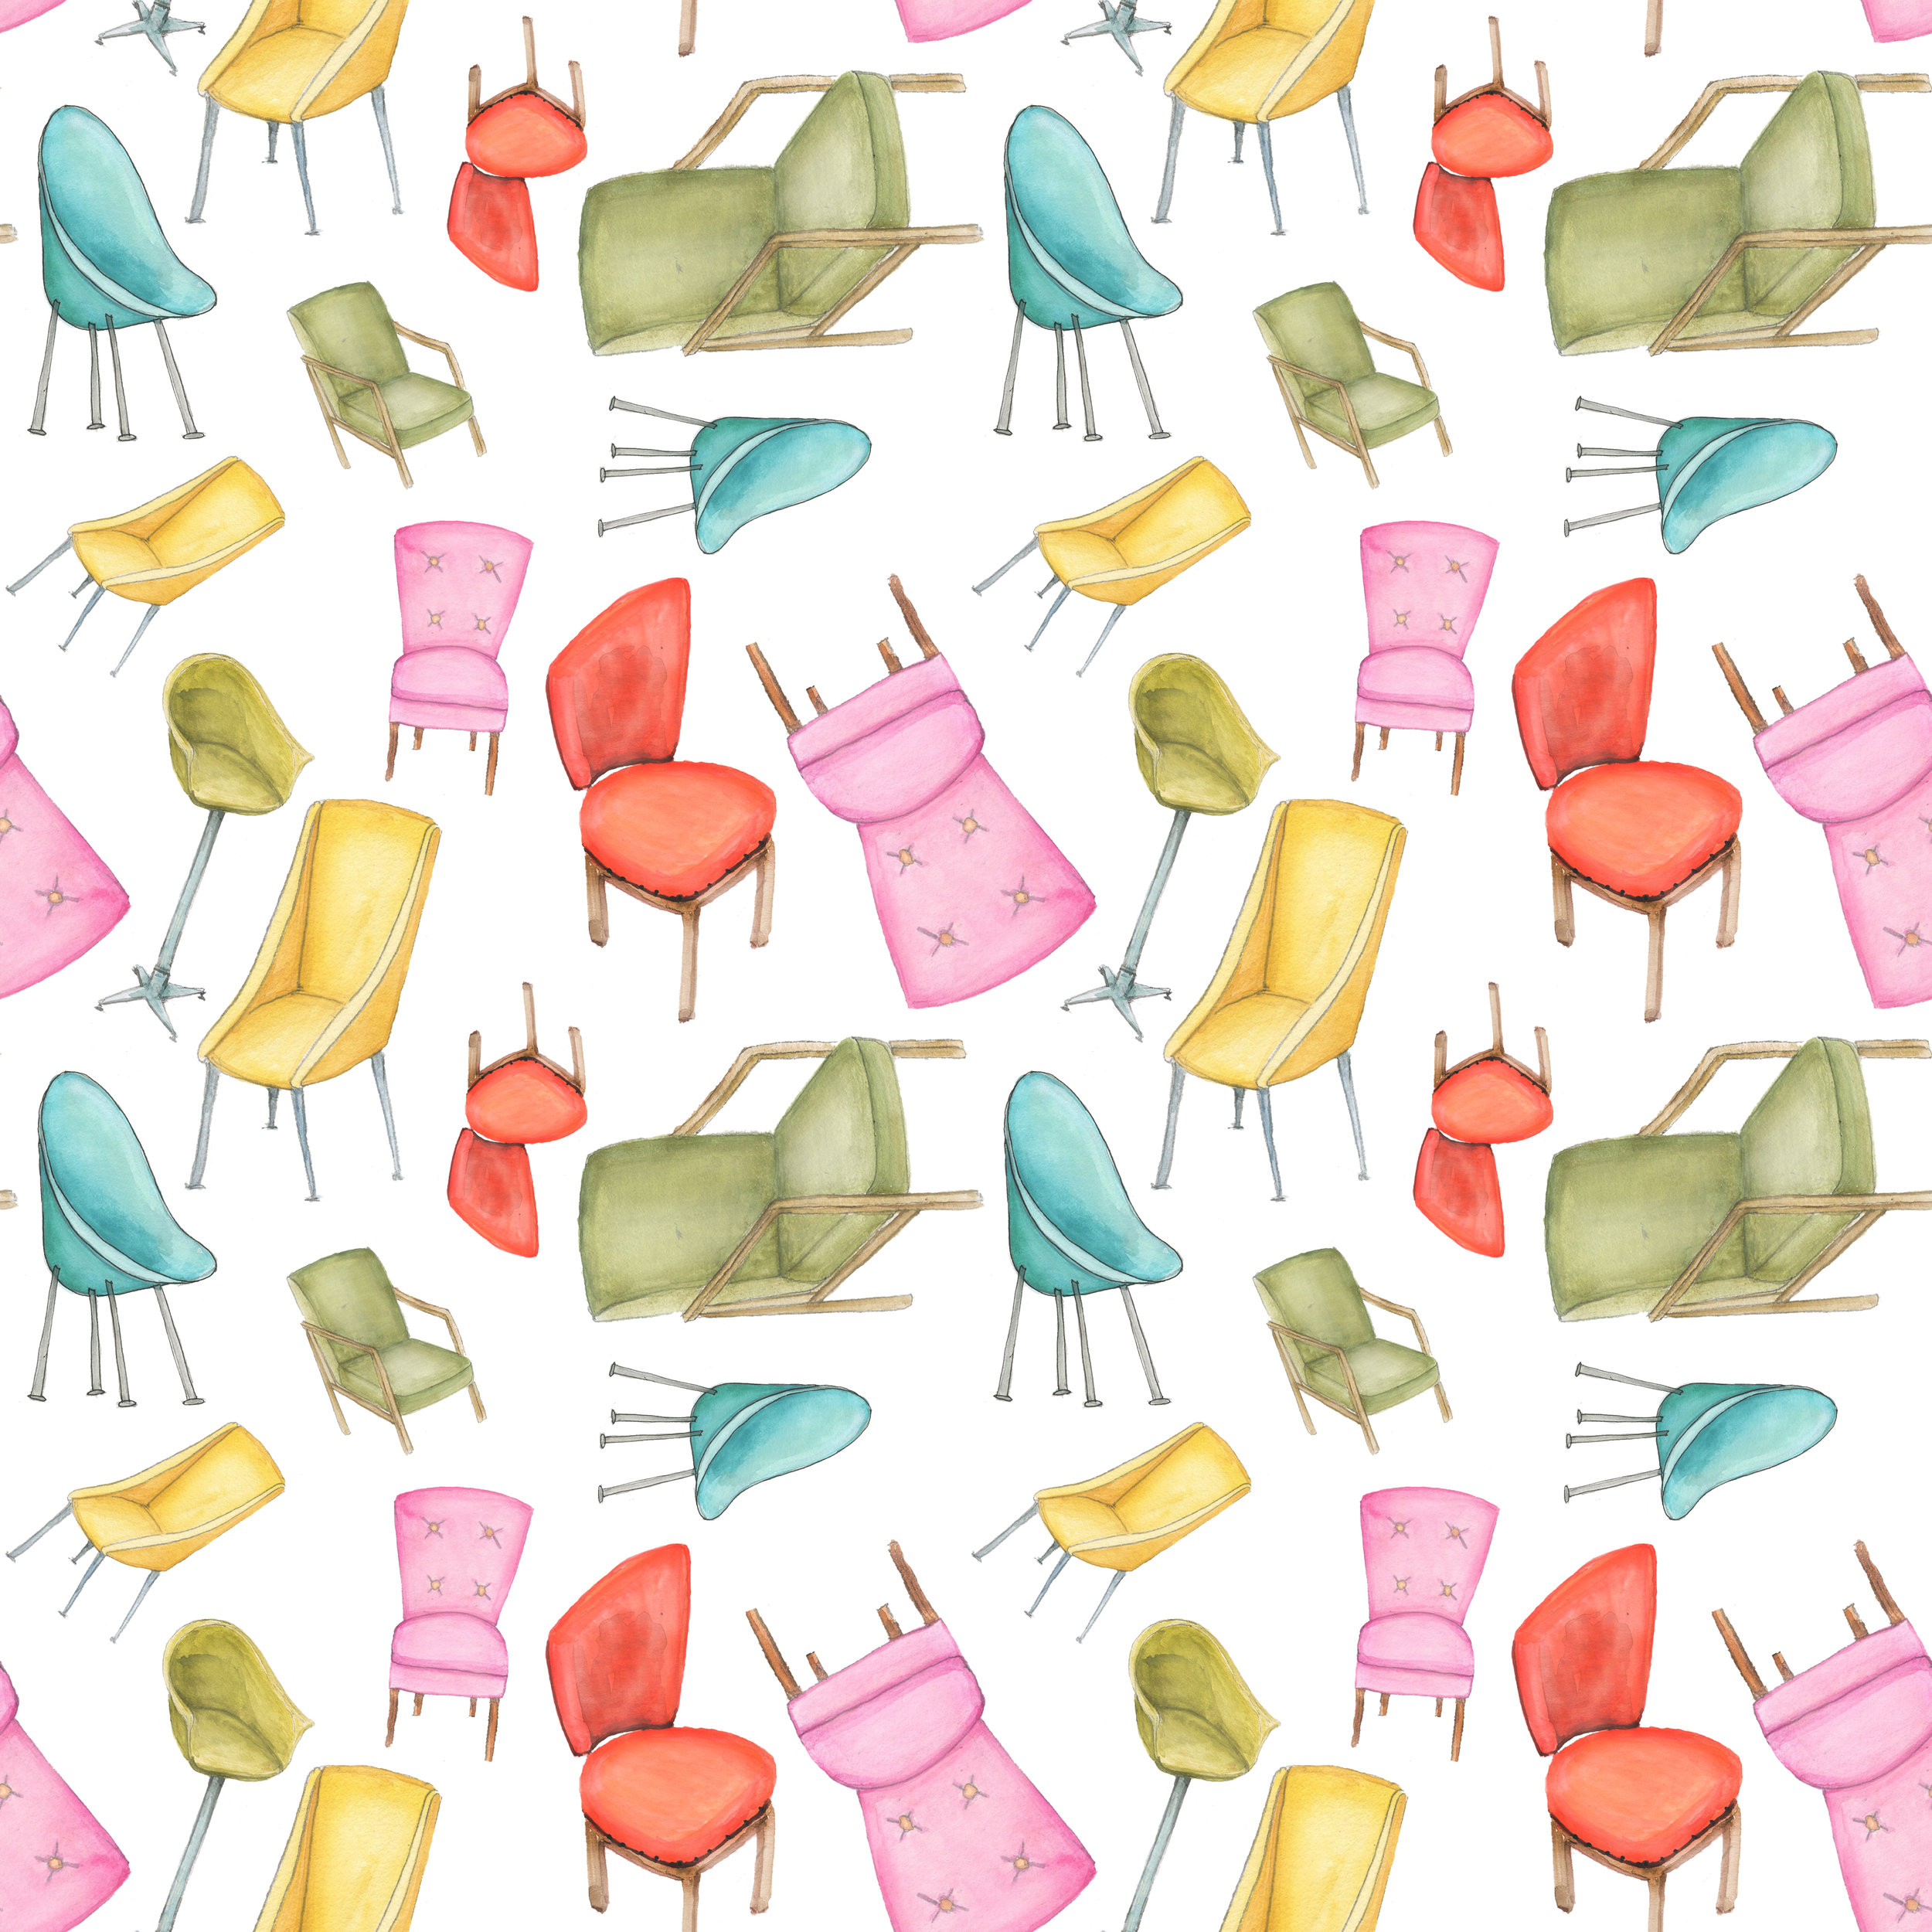 chair pattern.jpg